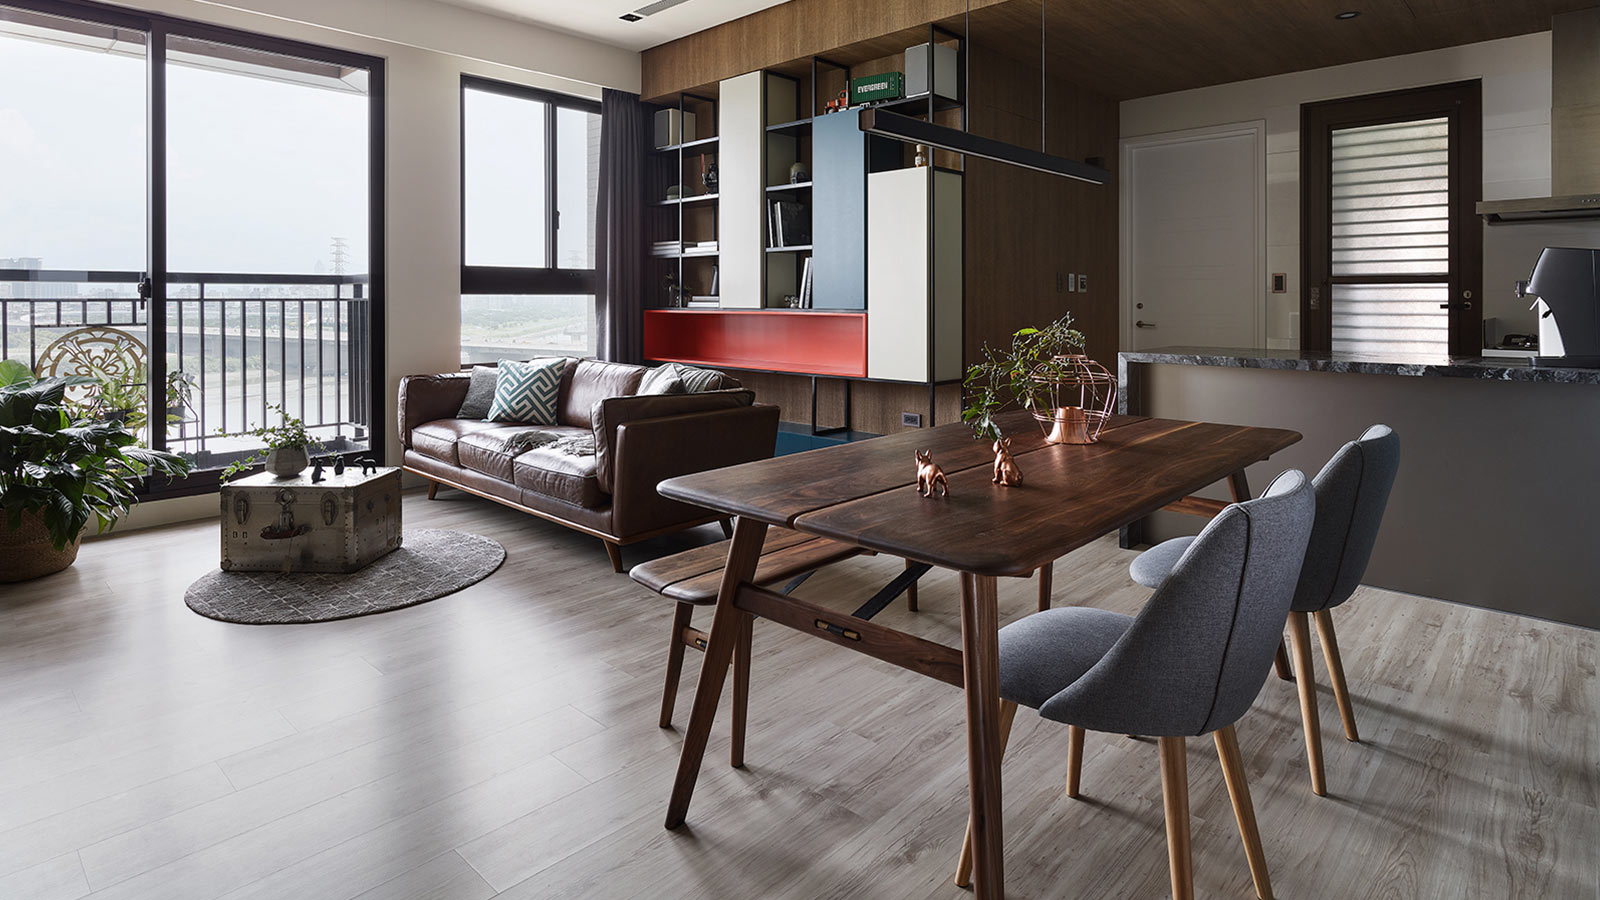 Small home located in New Taipei City, Taiwan for a young family